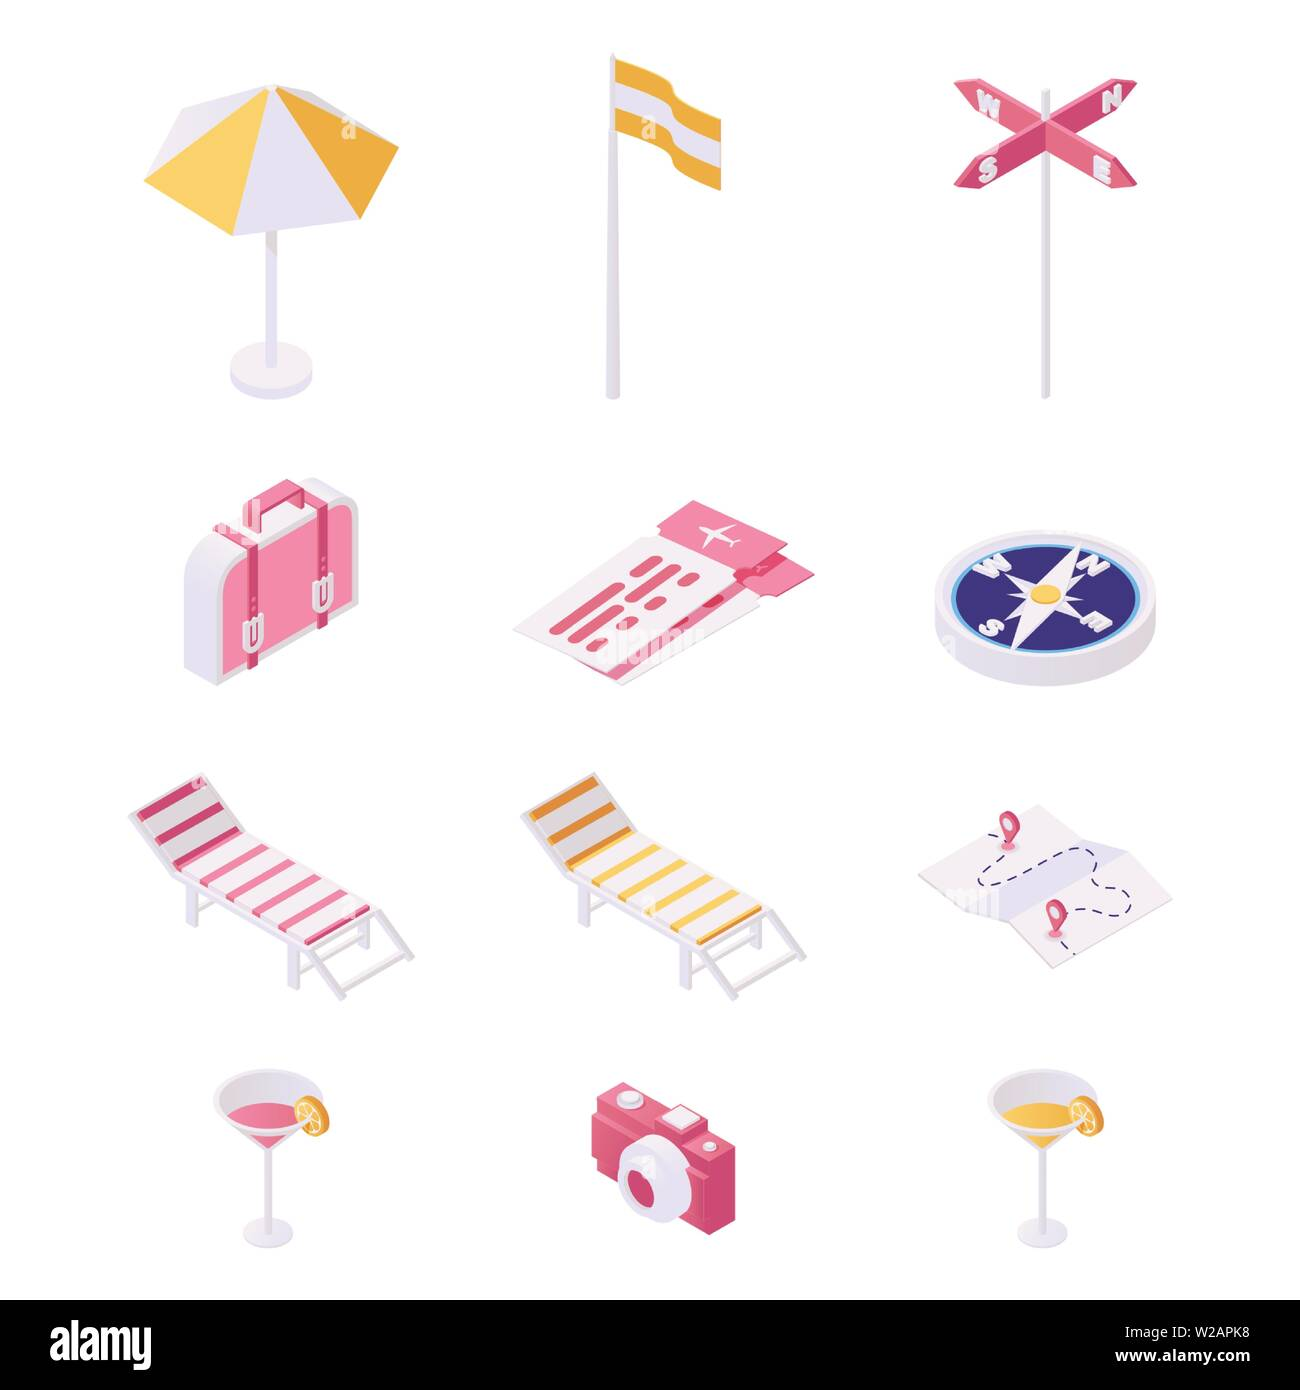 Traveling, tourism items illustration set. Beach equipment, essentials for tourists and foreign guests isometric vector collection. Deck chairs, cocktails, luxury resort attribute 3d concept - Stock Vector